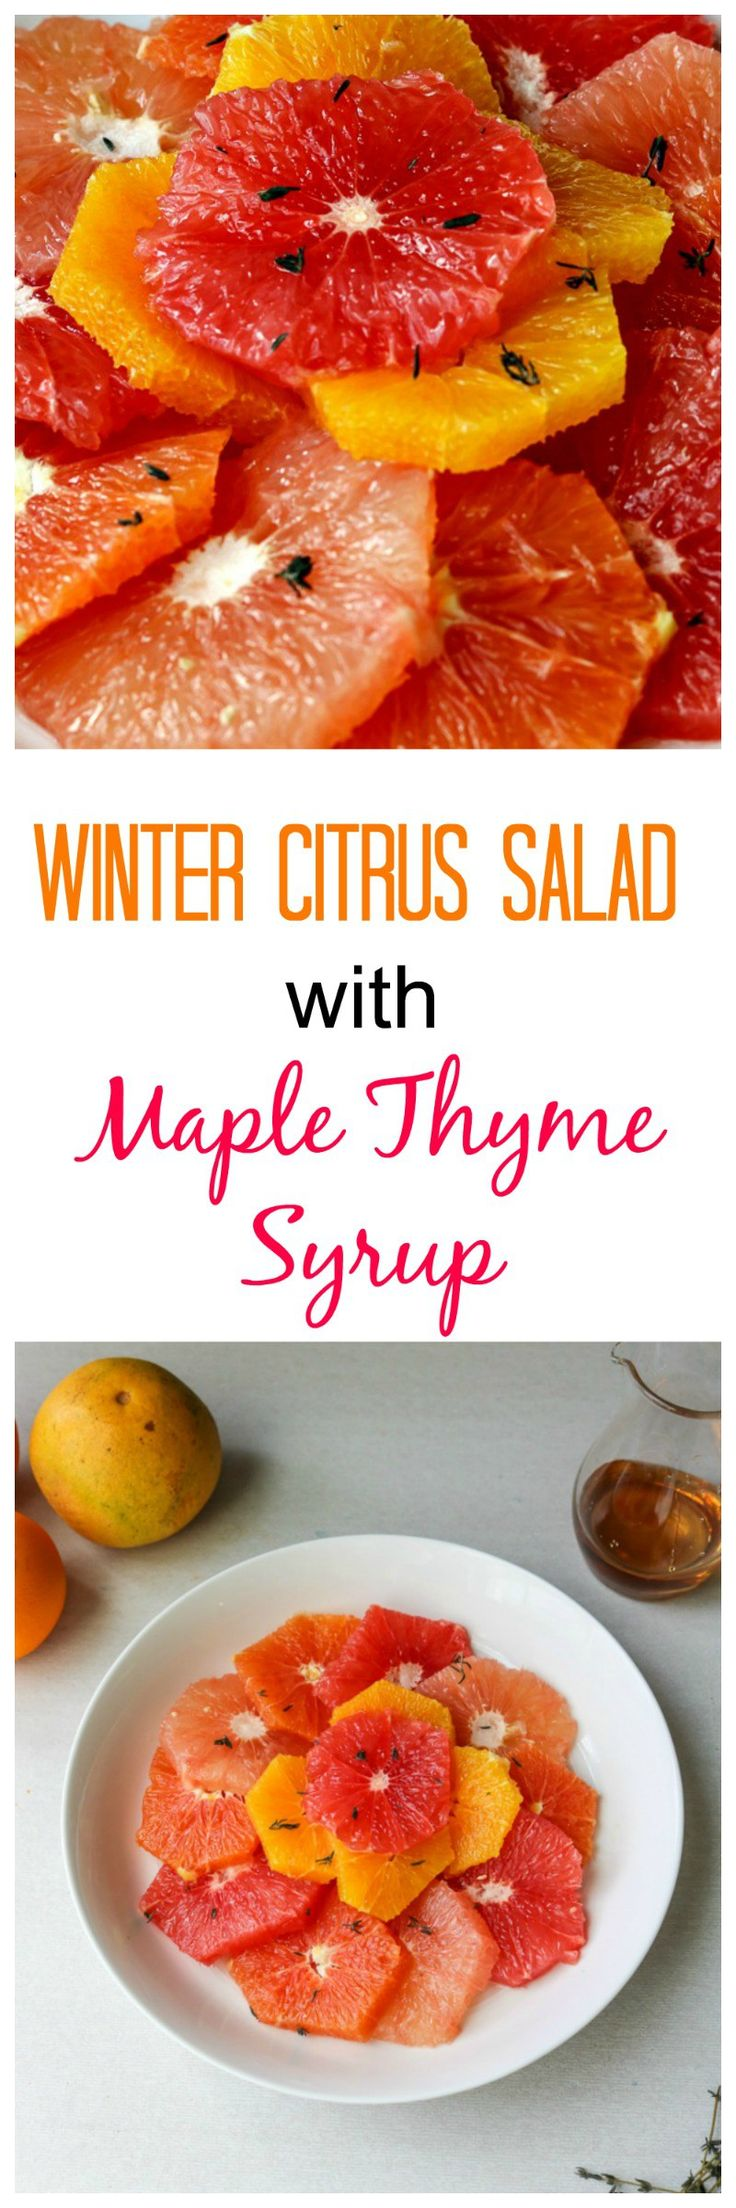 Thyme  Infused  Citrus  Salad:  A  variety  of  fresh  winter  citrus  stars  in  a  simple  dish  that  has  been  elevated  with  a  simple  syrup made with maple syrup and infused with fresh thyme. This dish is the perfect way to celebrate winter produce.